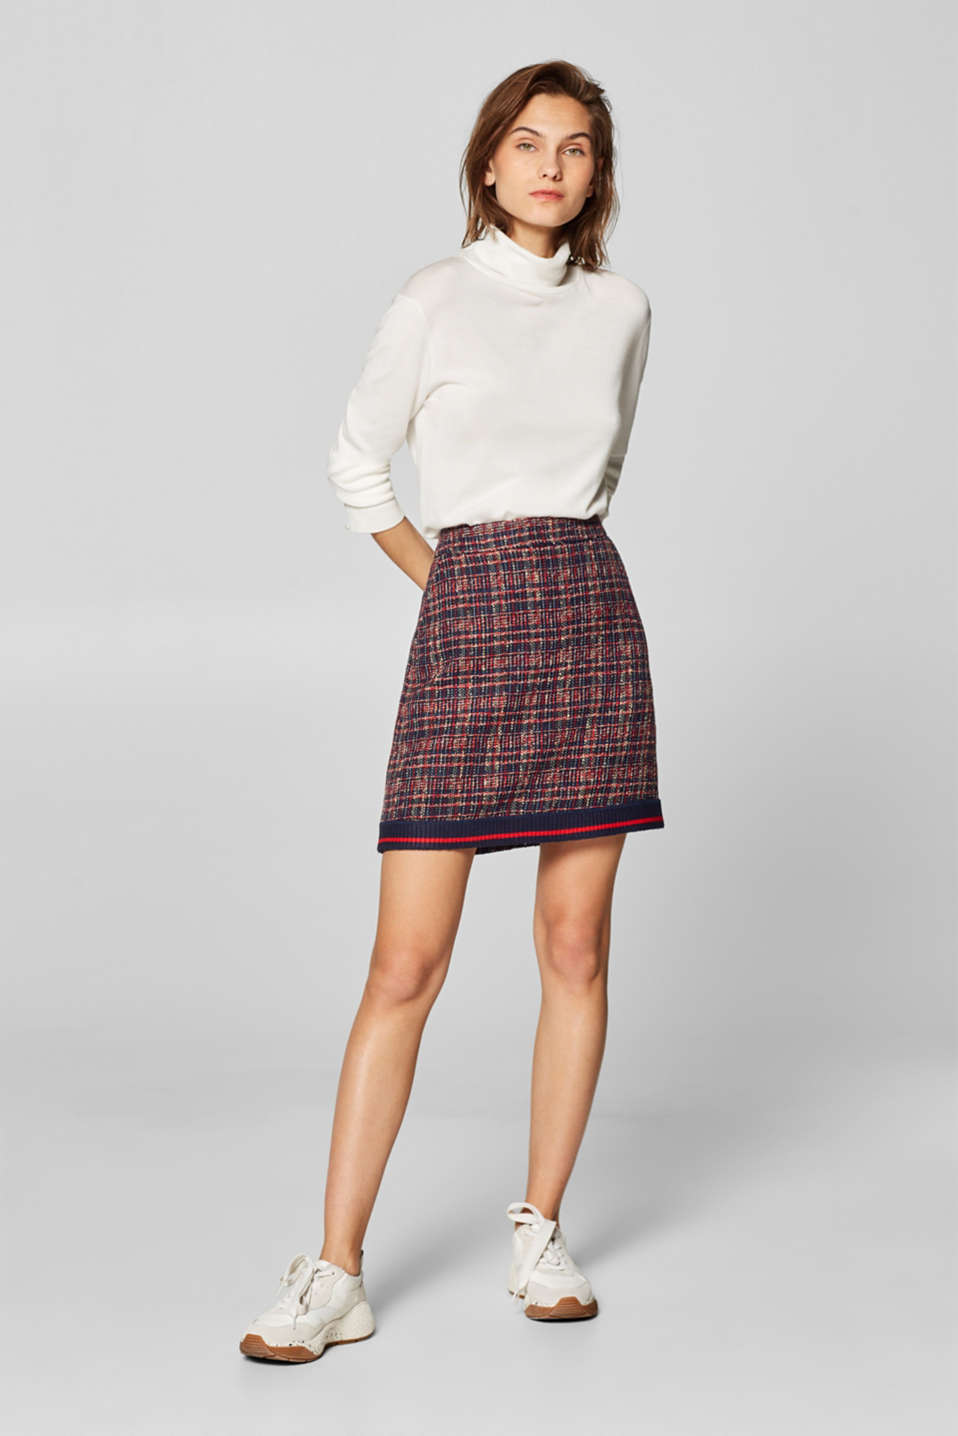 Esprit - Tweed skirt with a striped jersey hem